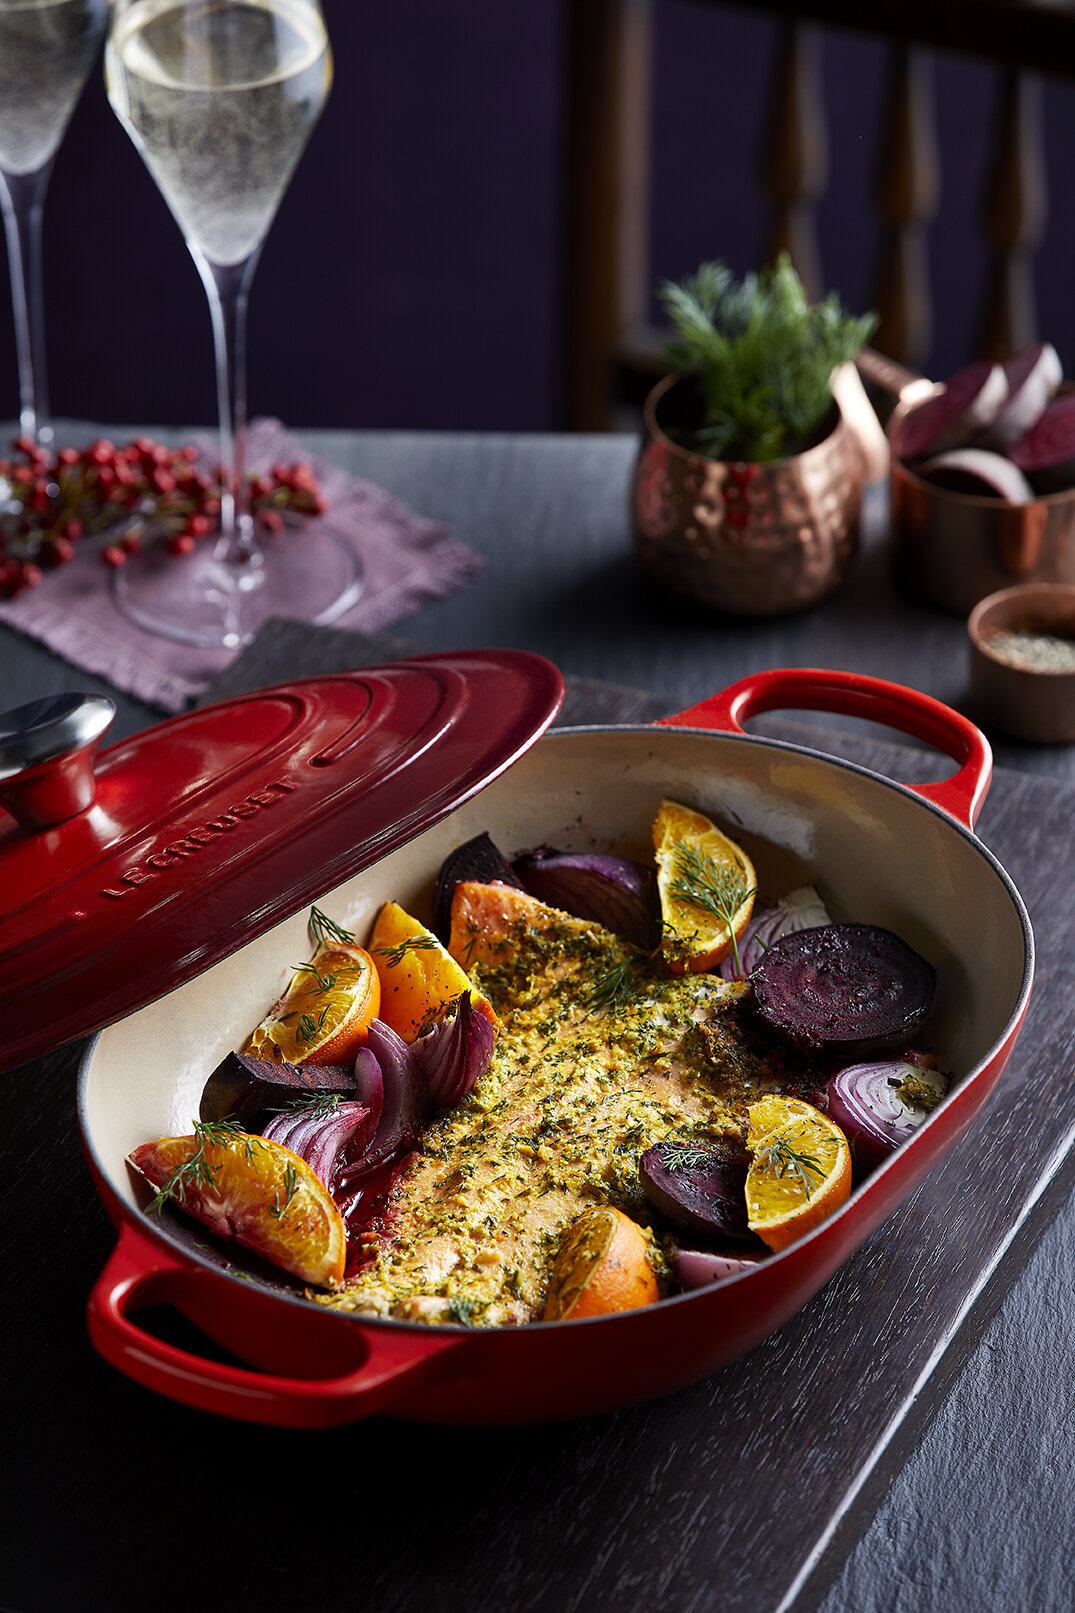 Side of roasted salmon with orange, beetroot and red onion Portrait f5.6 Retouched.jpg